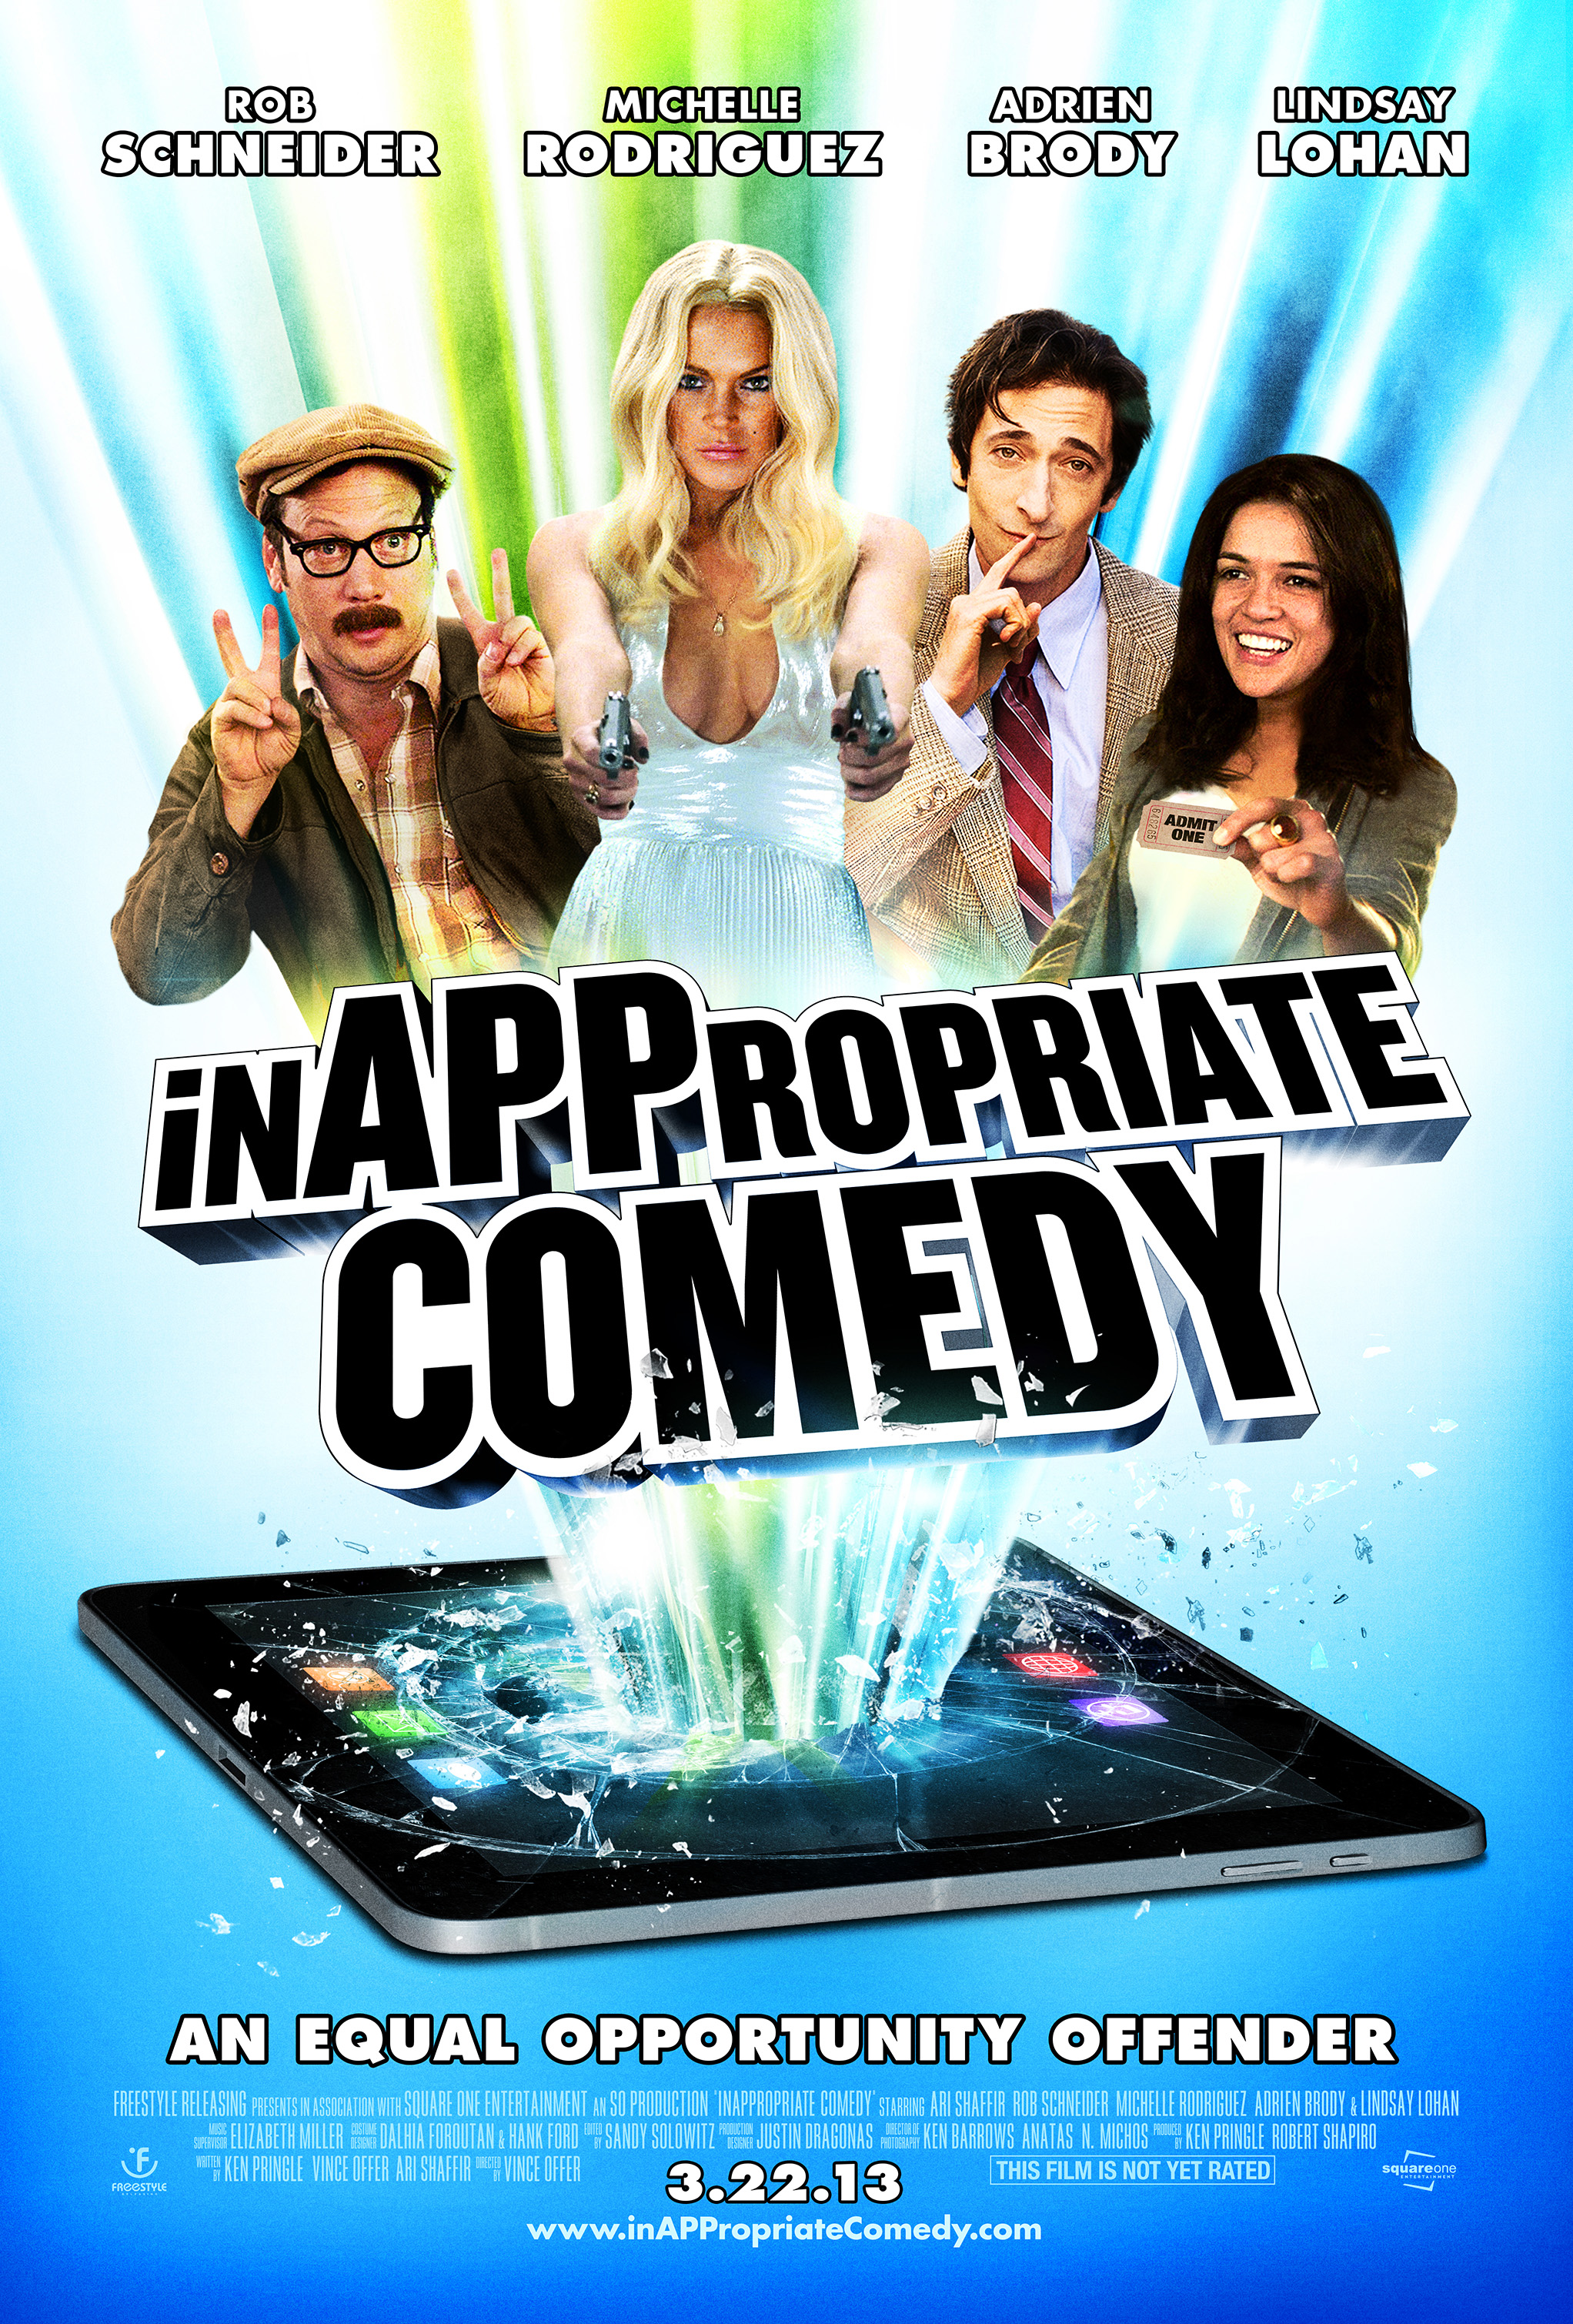 Ari Shaffir Politically Incorrect in New InAPPropriate Comedy Clip Ari Shaffir Politically Incorrect in New InAPPropriate Comedy Clip